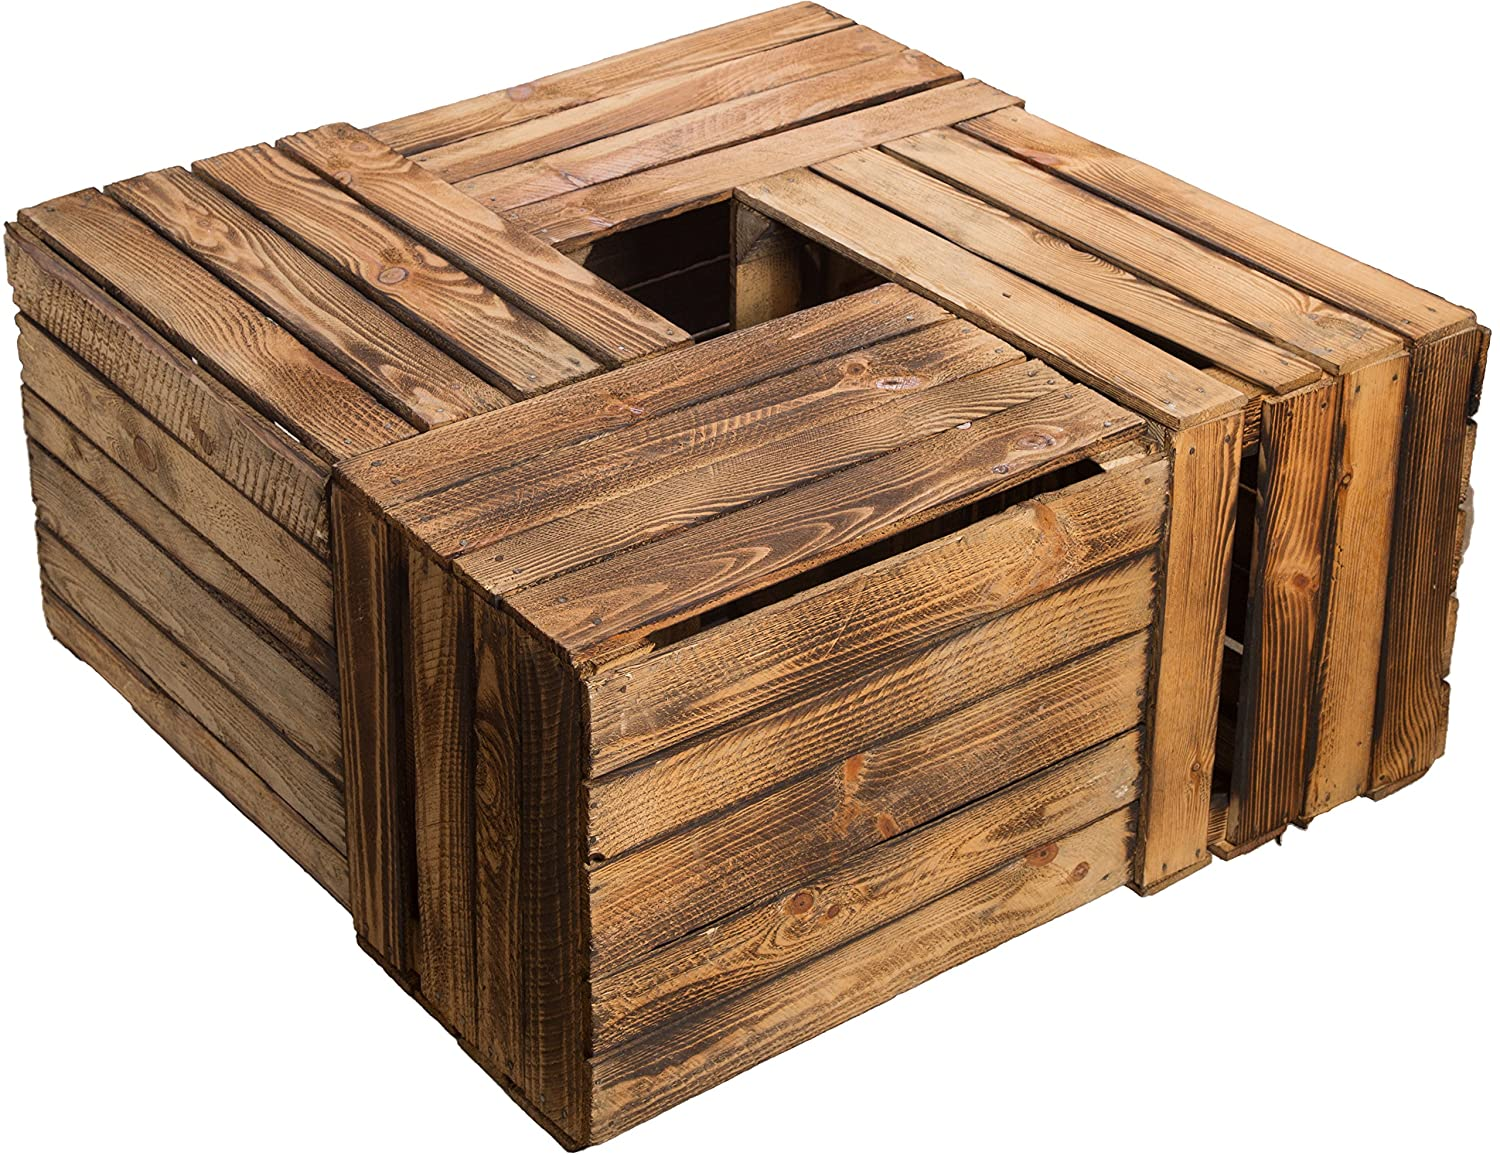 4 pcs flambierte / Flame Fruit Crate Schultz (BF) 49 x 39 x 29 CM / Apfelkisten produce wine boxes from the Old Countryside